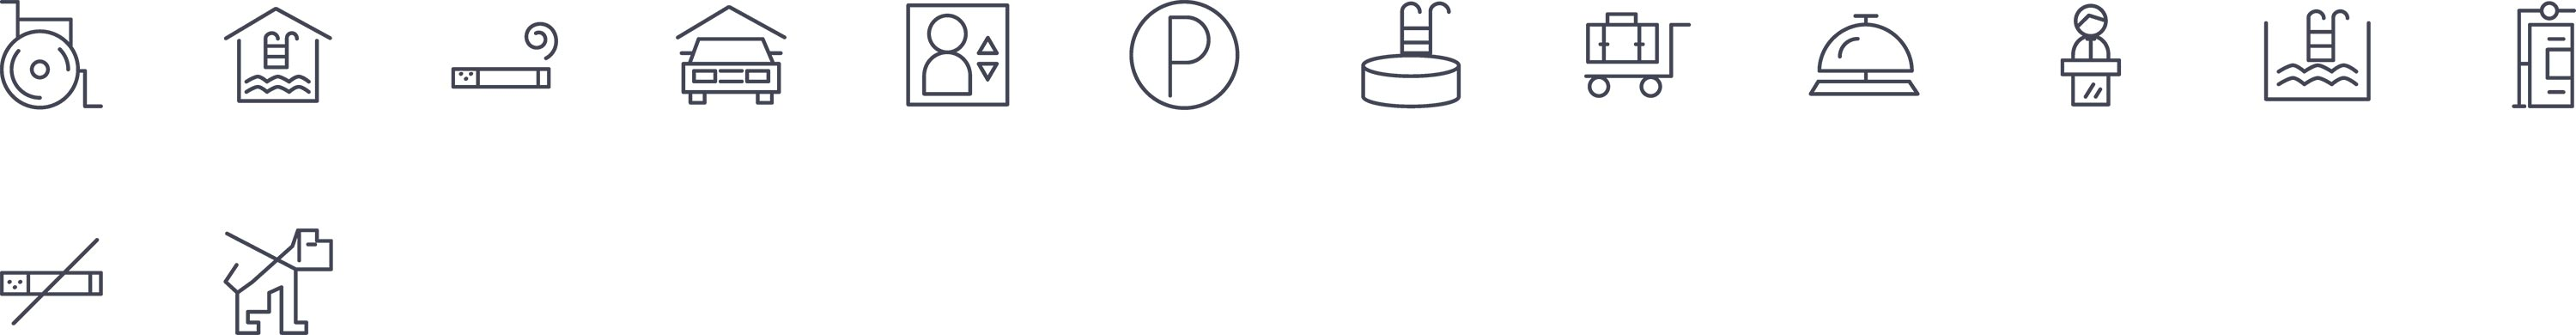 Hotel Facilities Line Icons